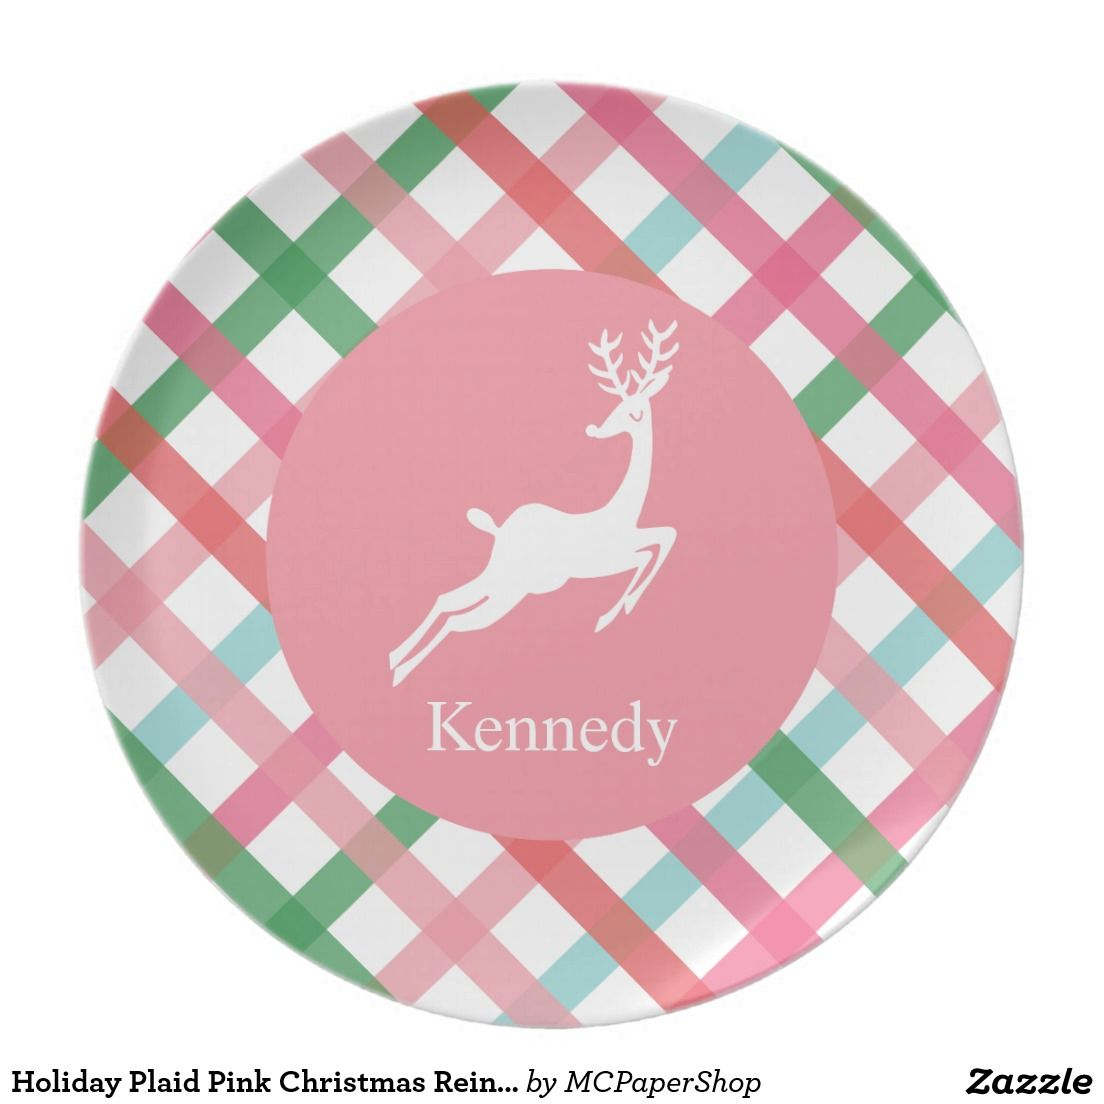 Holiday Plaid Pink Christmas Reindeer Personalize Melamine Plate  sc 1 st  Pinterest & Plaid Pink Christmas Reindeer Personalize Melamine Plate